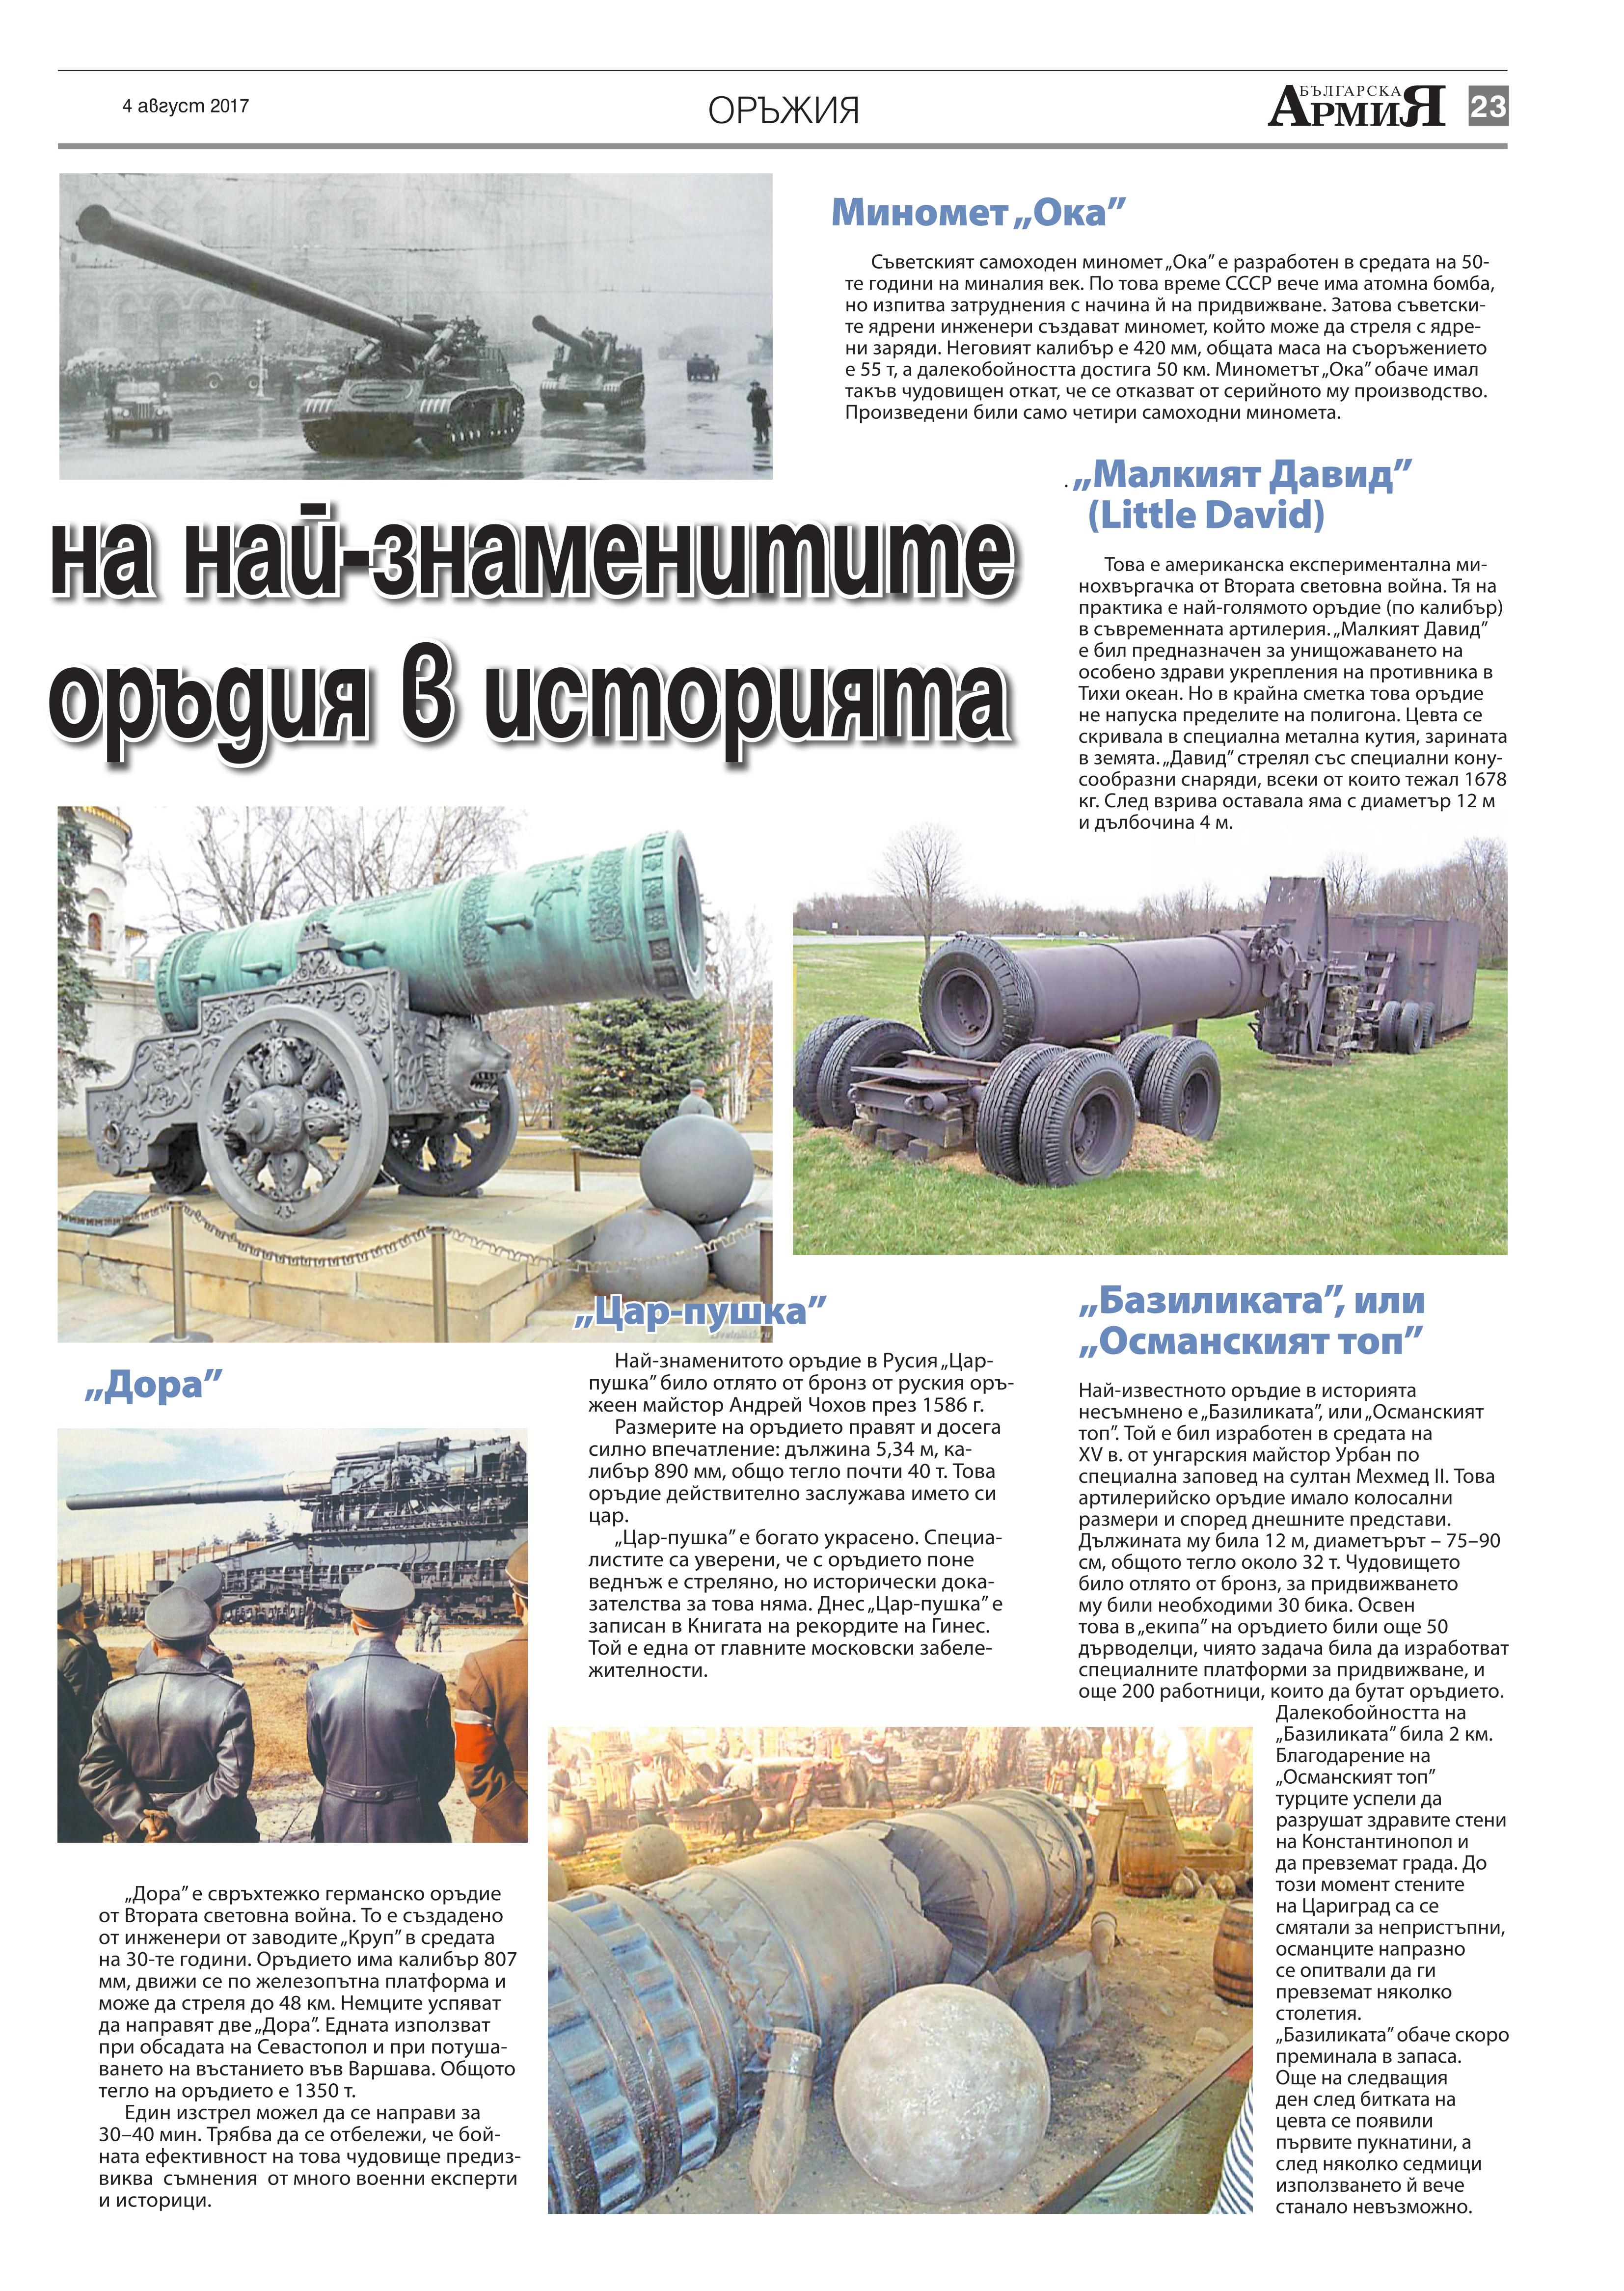 https://www.armymedia.bg/wp-content/uploads/2015/06/23.page1_-27.jpg